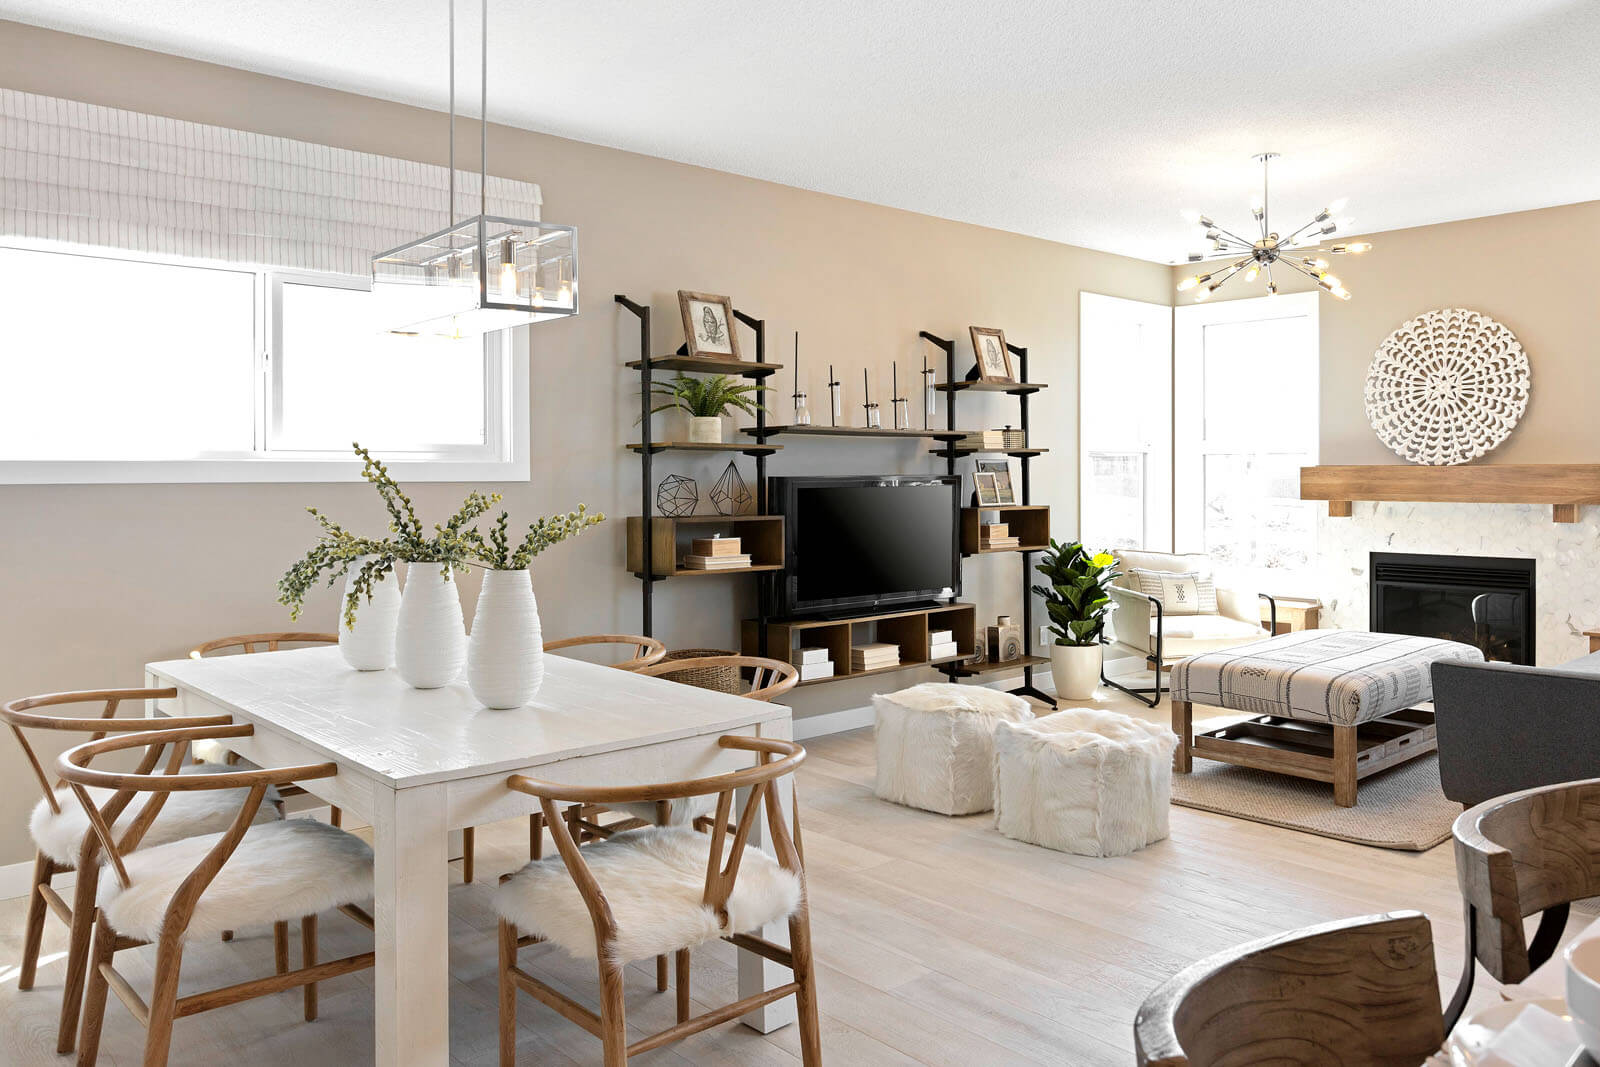 New Calgary  Model Home Sereno 2 in Walden, located at 333 Walgrove Terrace SE Built By Cardel Homes Calgary